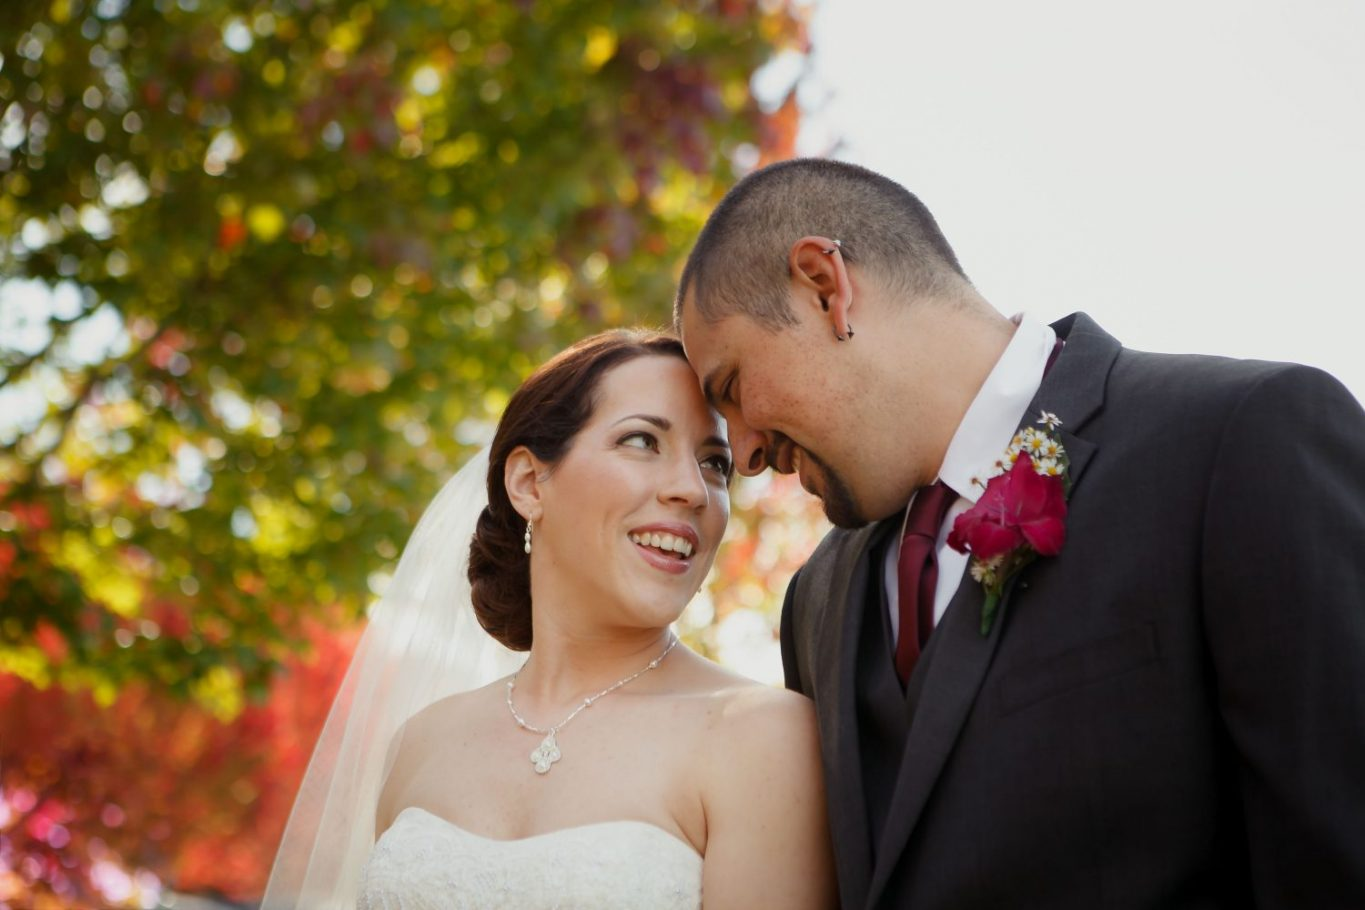 roche-harbor-wedding-photographer-autumn-foliage